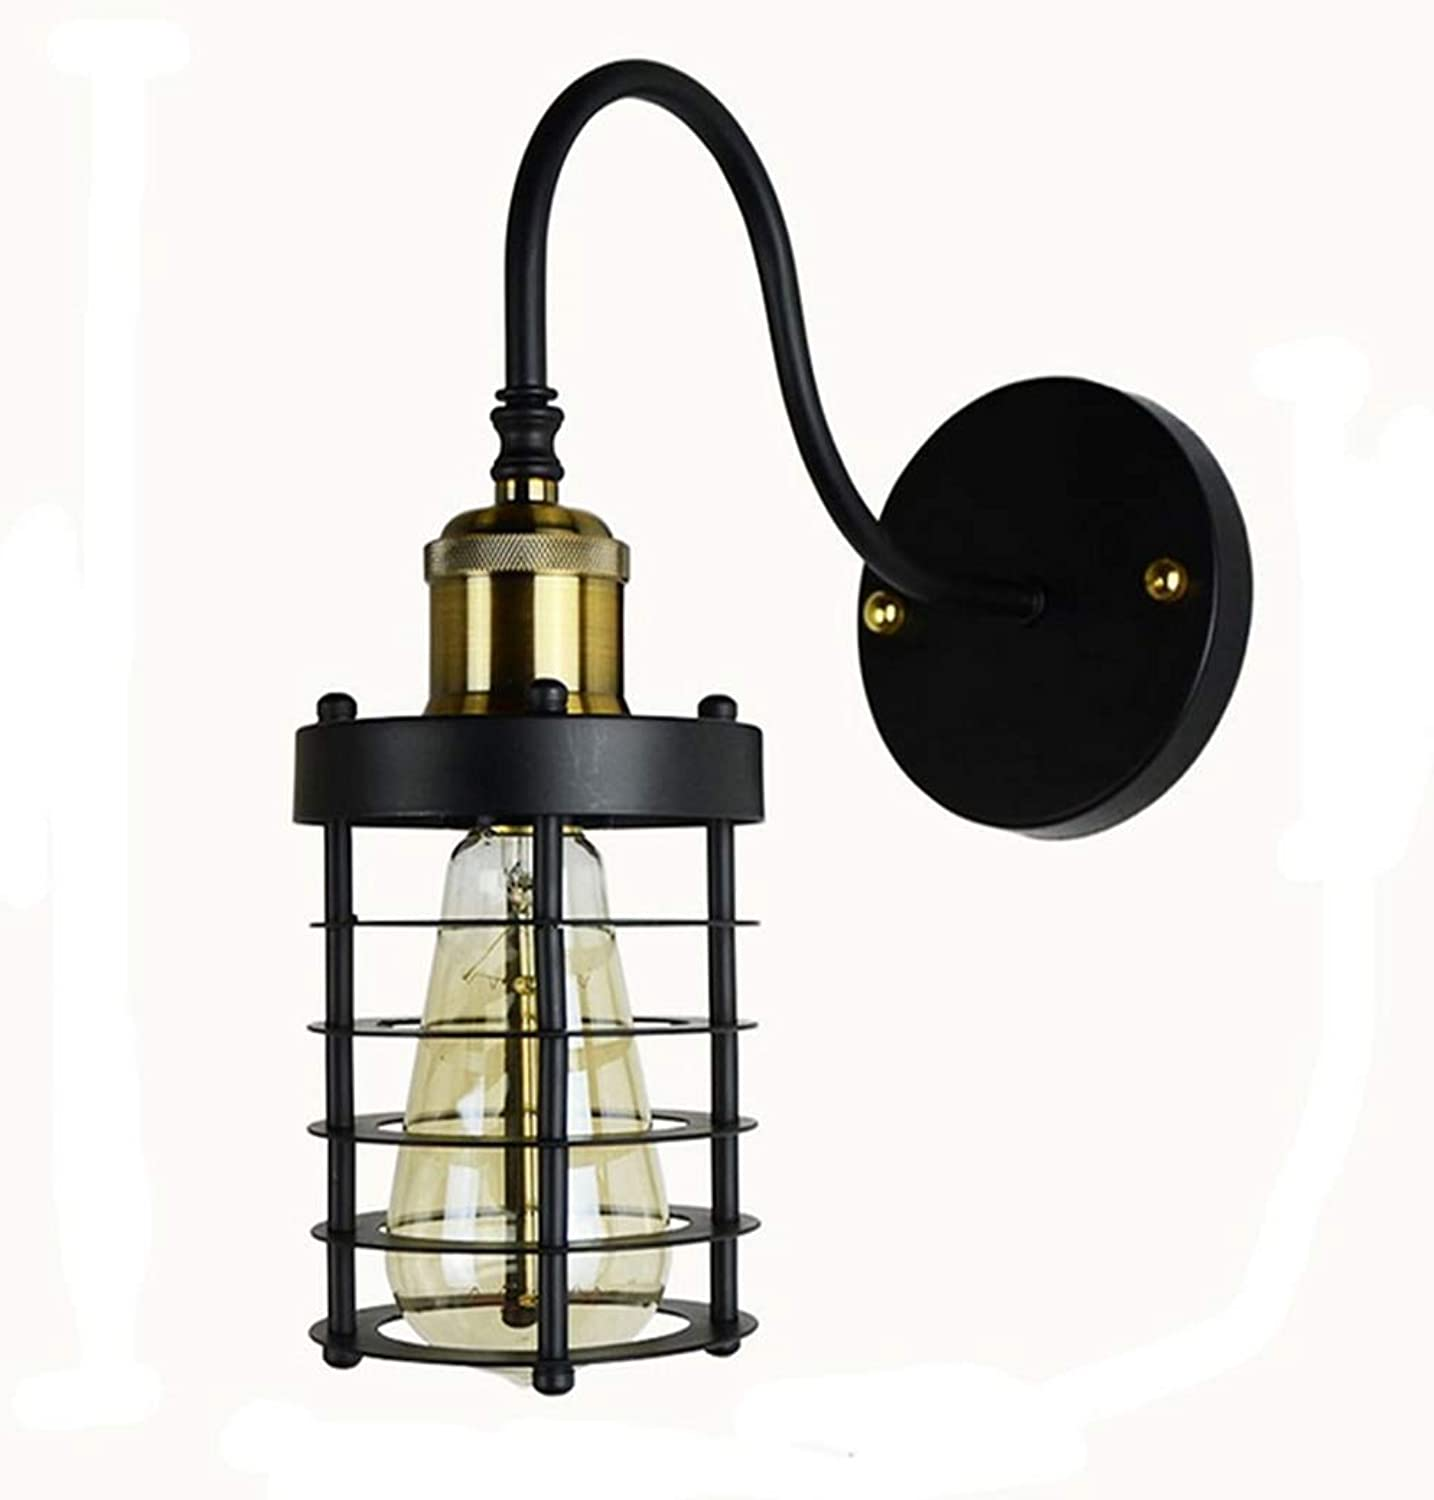 Lichtretro Iron Cage Wall Light Metal Cage Frame Classic Vintage Decorative Lamp E27 Lamp Head